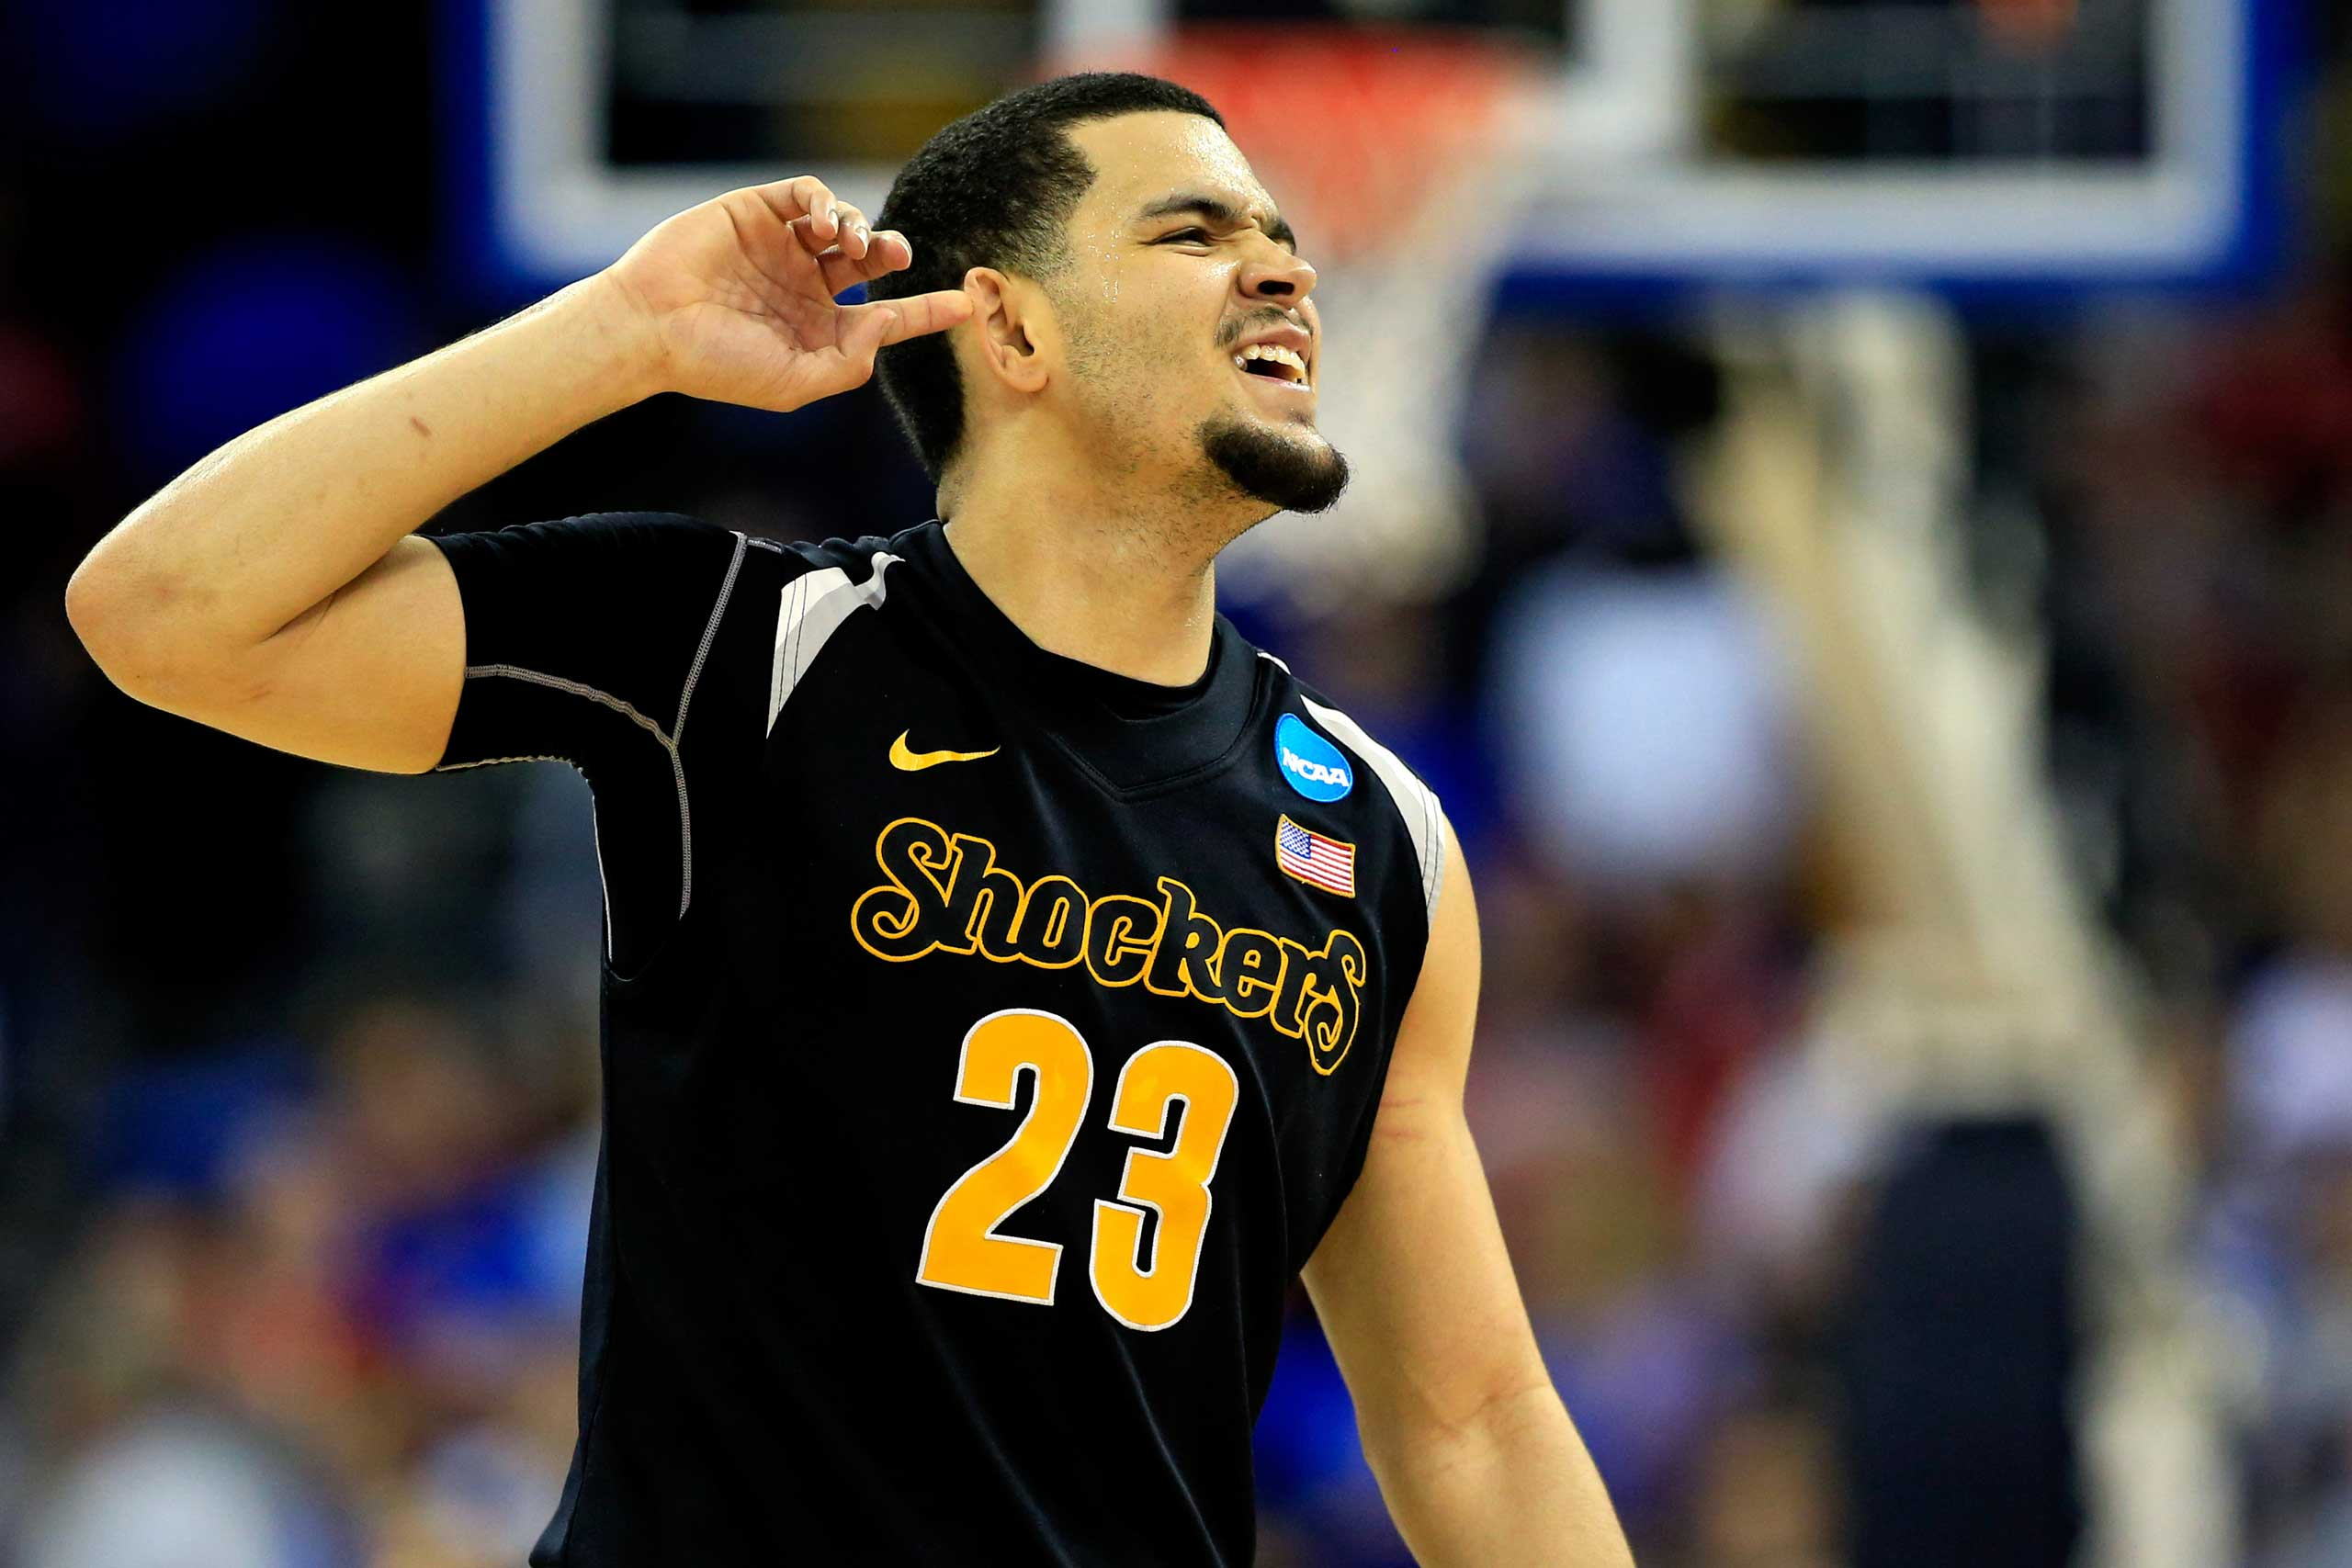 Fred VanVleet of the Wichita State Shockers celebrates as the second half ends against the Kansas Jayhawks during the third round of the 2015 NCAA Men's Basketball Tournament at the CenturyLink Center in Omaha, Neb. on March 22, 2015.